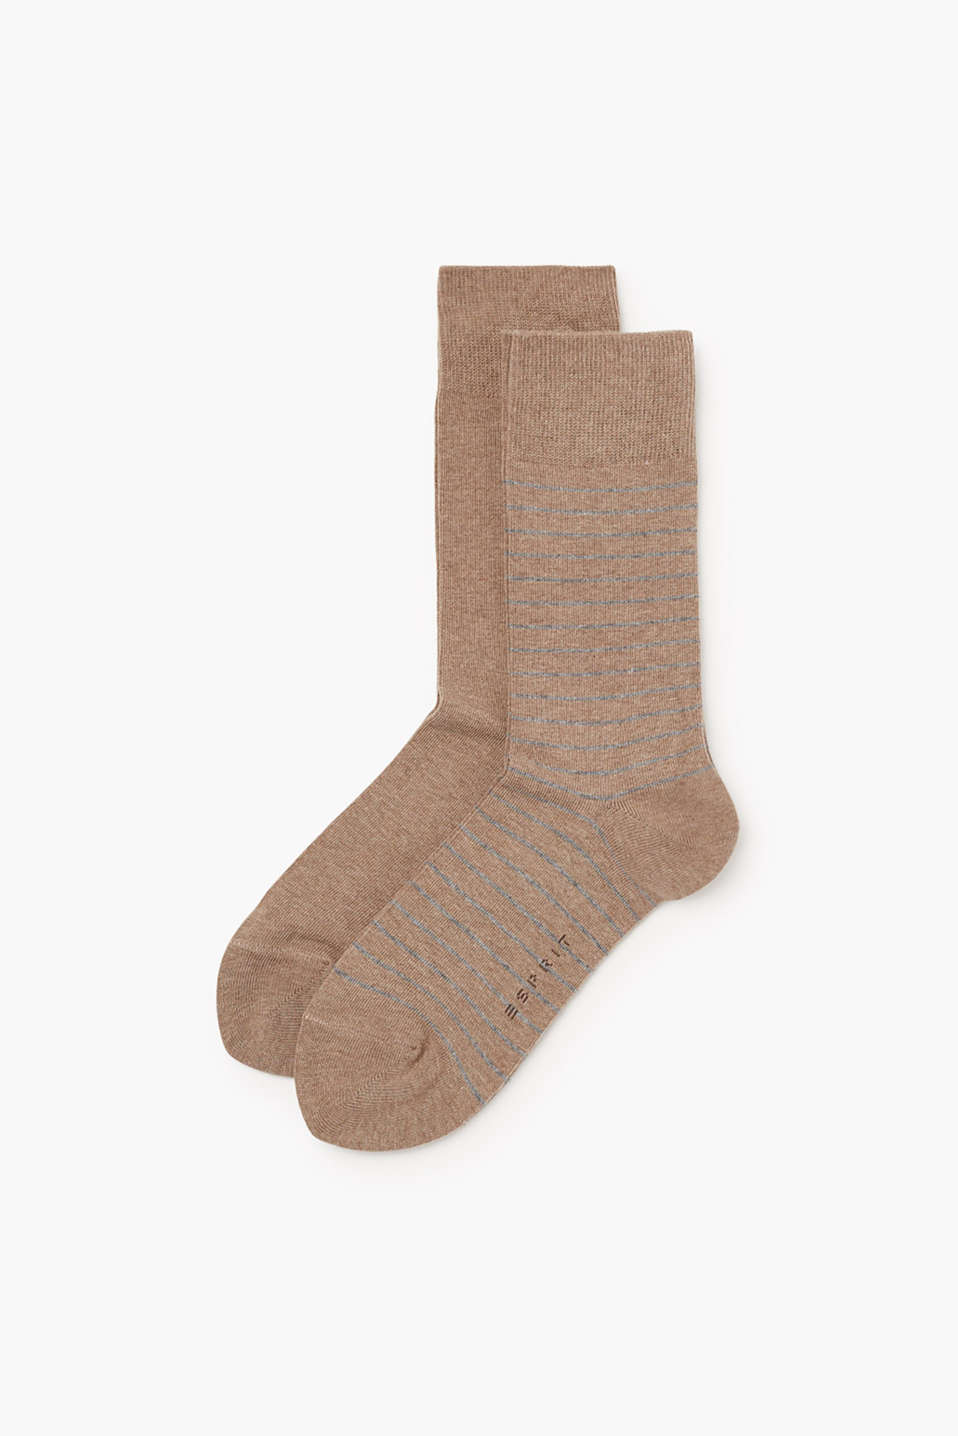 Esprit - Two pack of socks, plain and with stripes